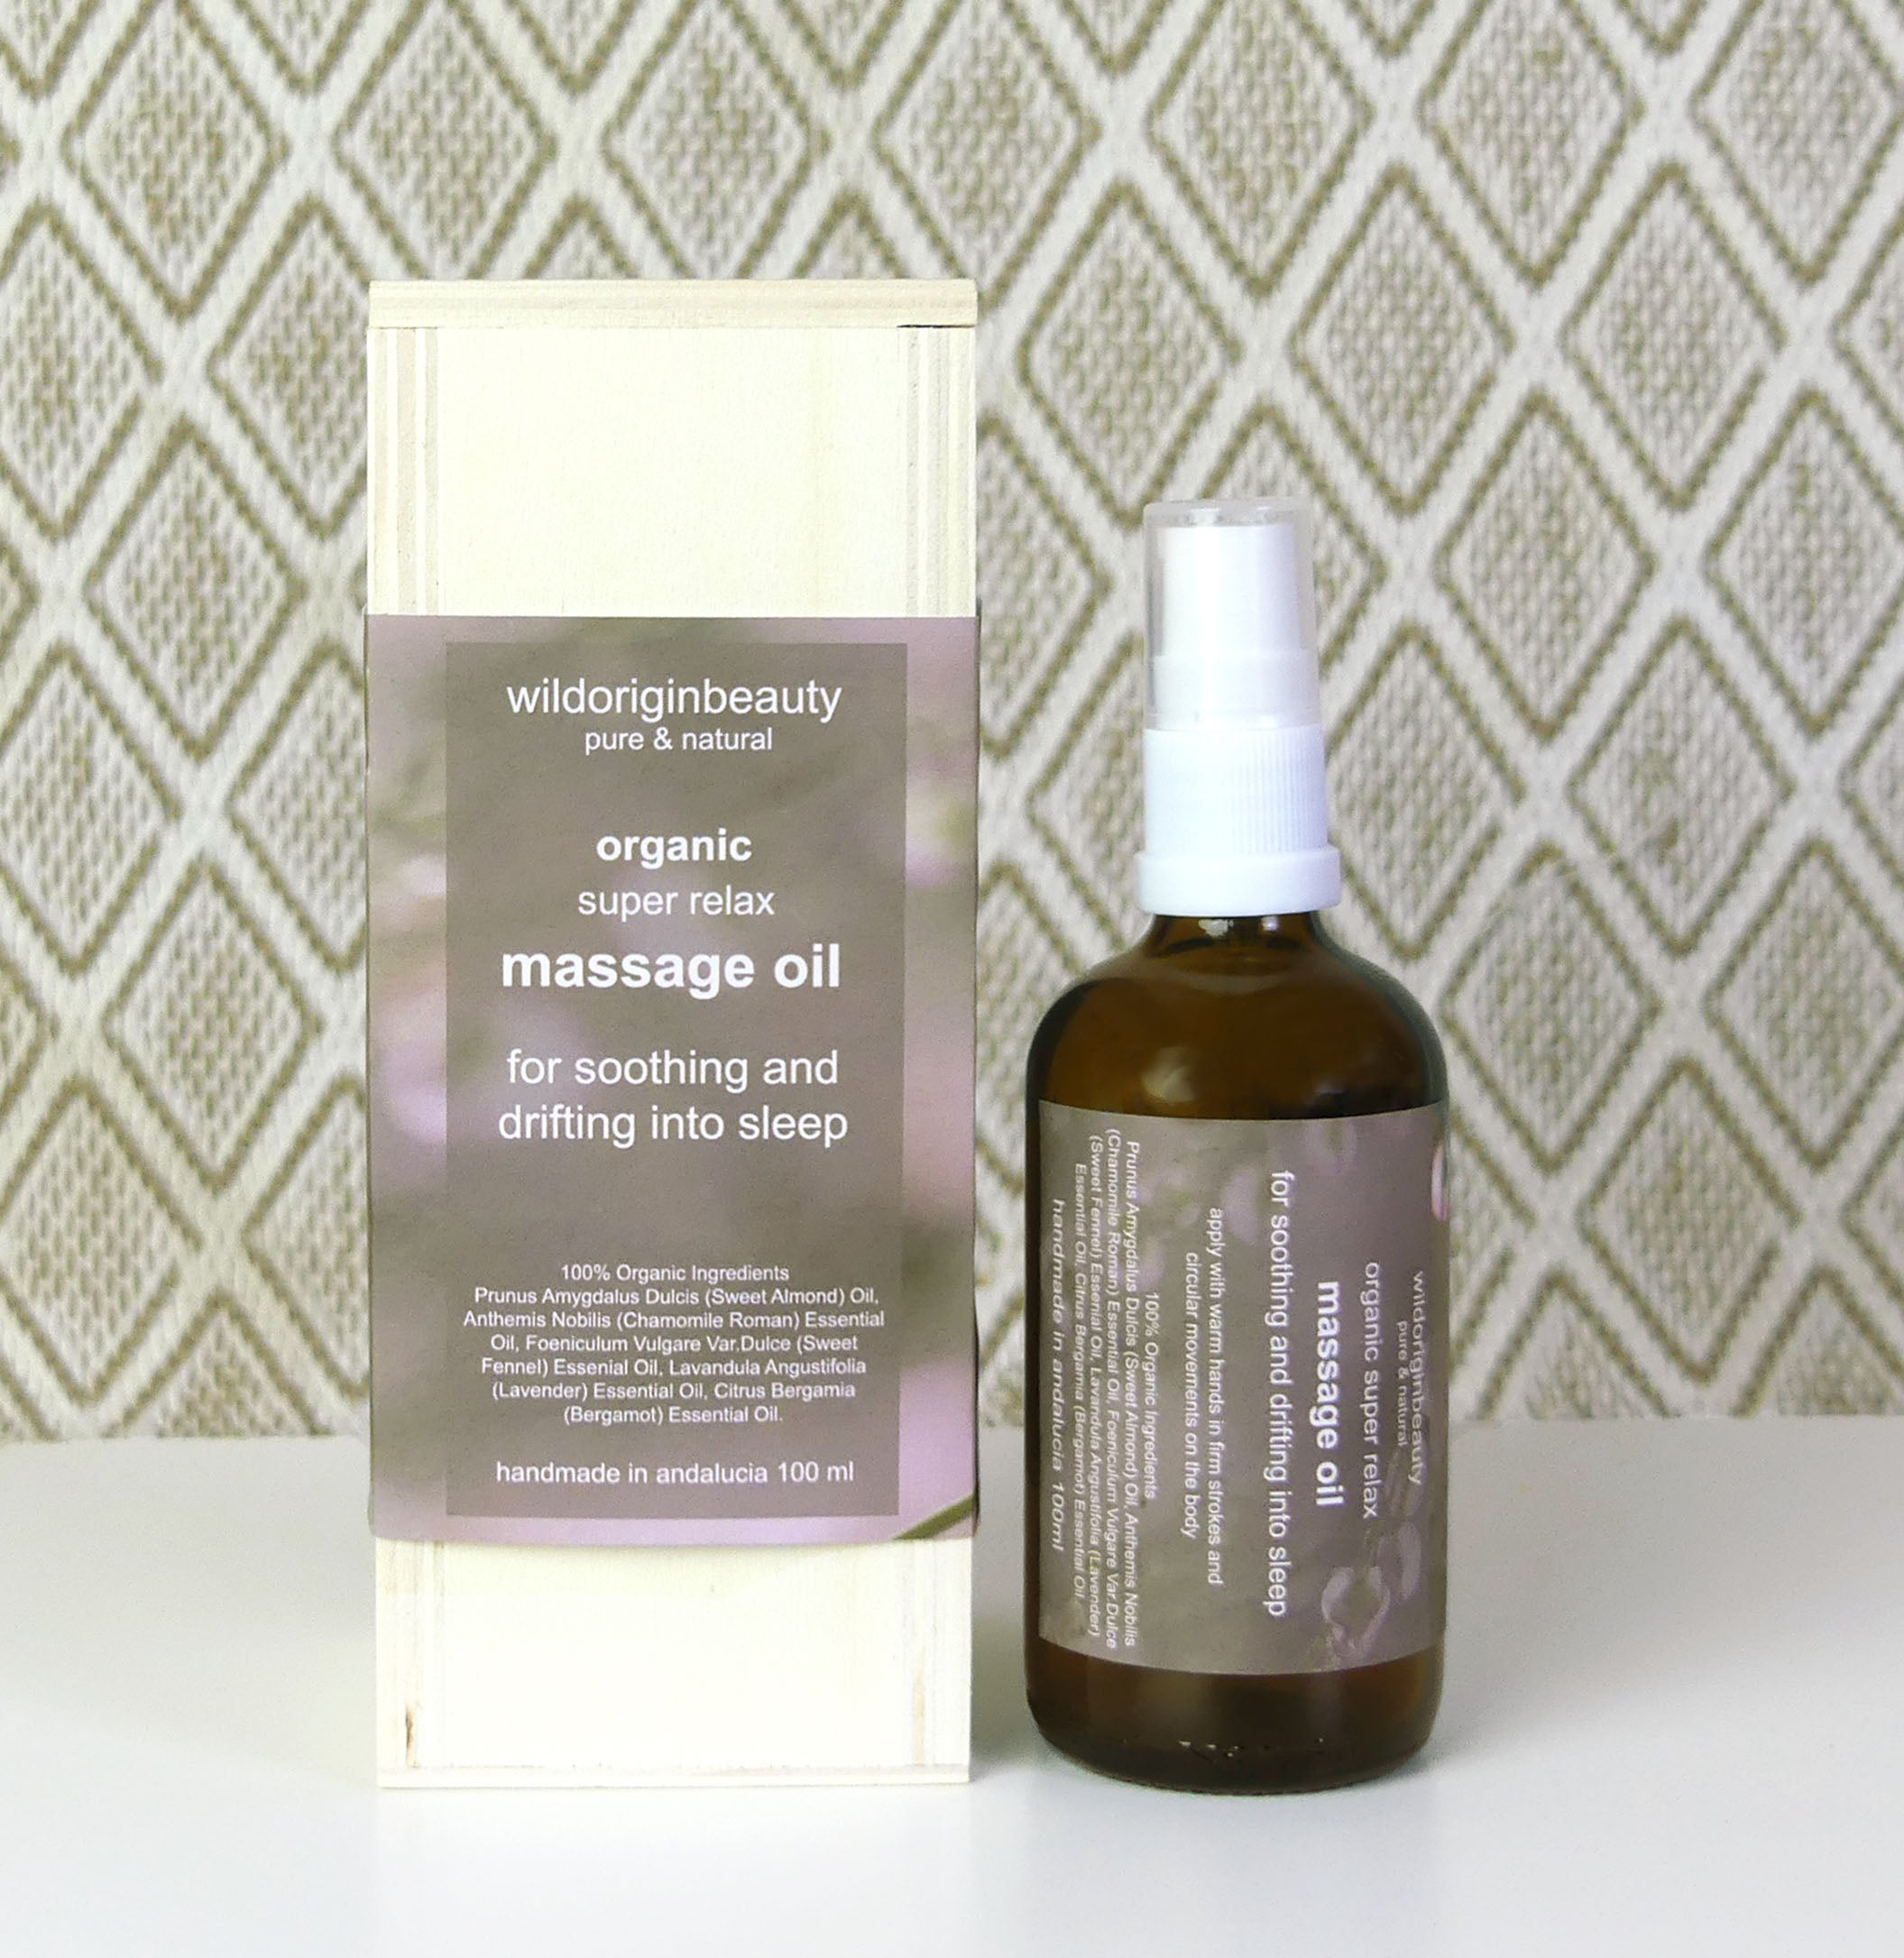 Organic Massage oil - for drifting into sleep